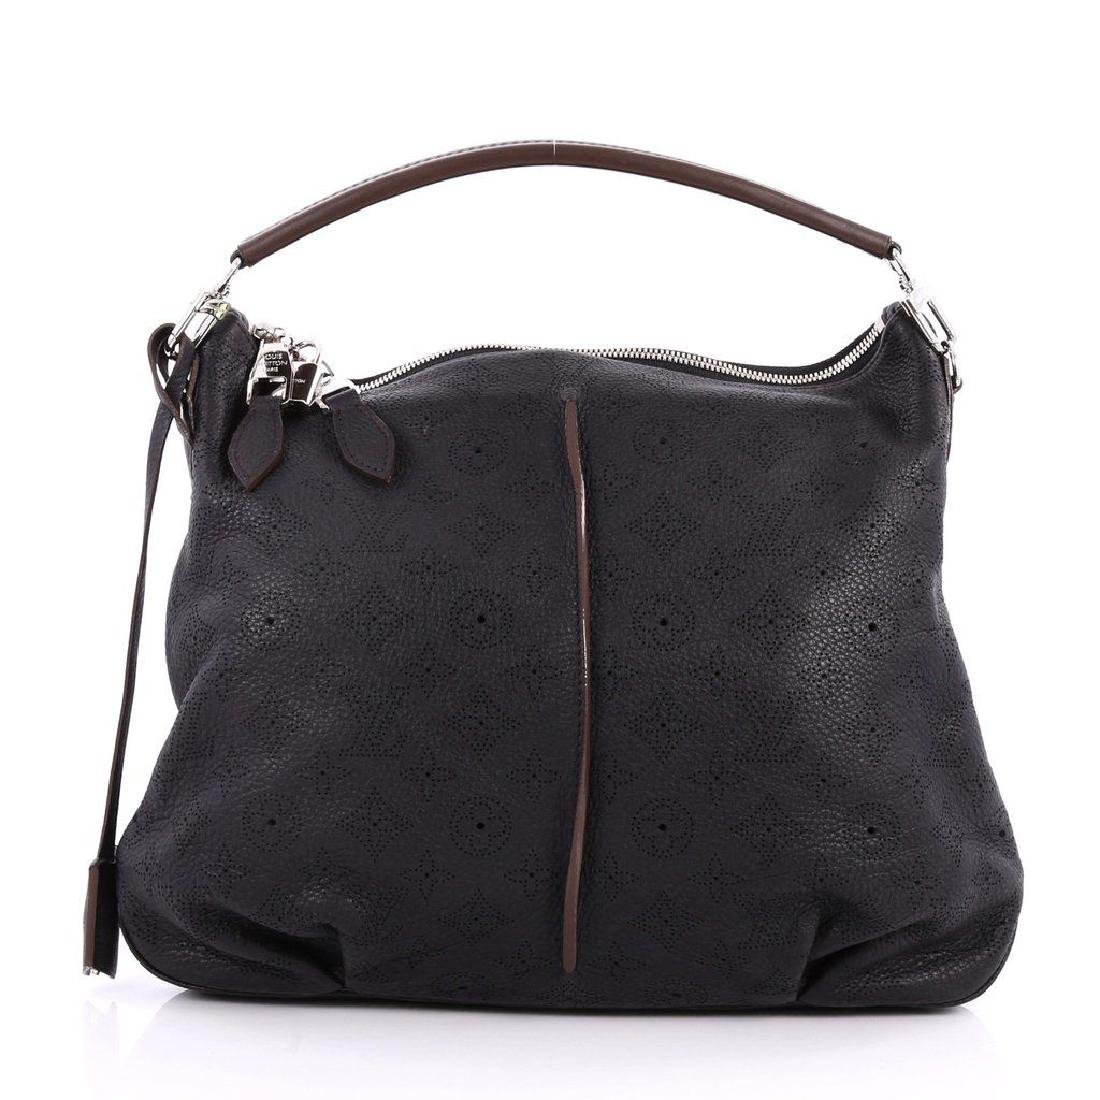 Louis Vuitton Selene Mahina Handbag Pm Black Brown - 3